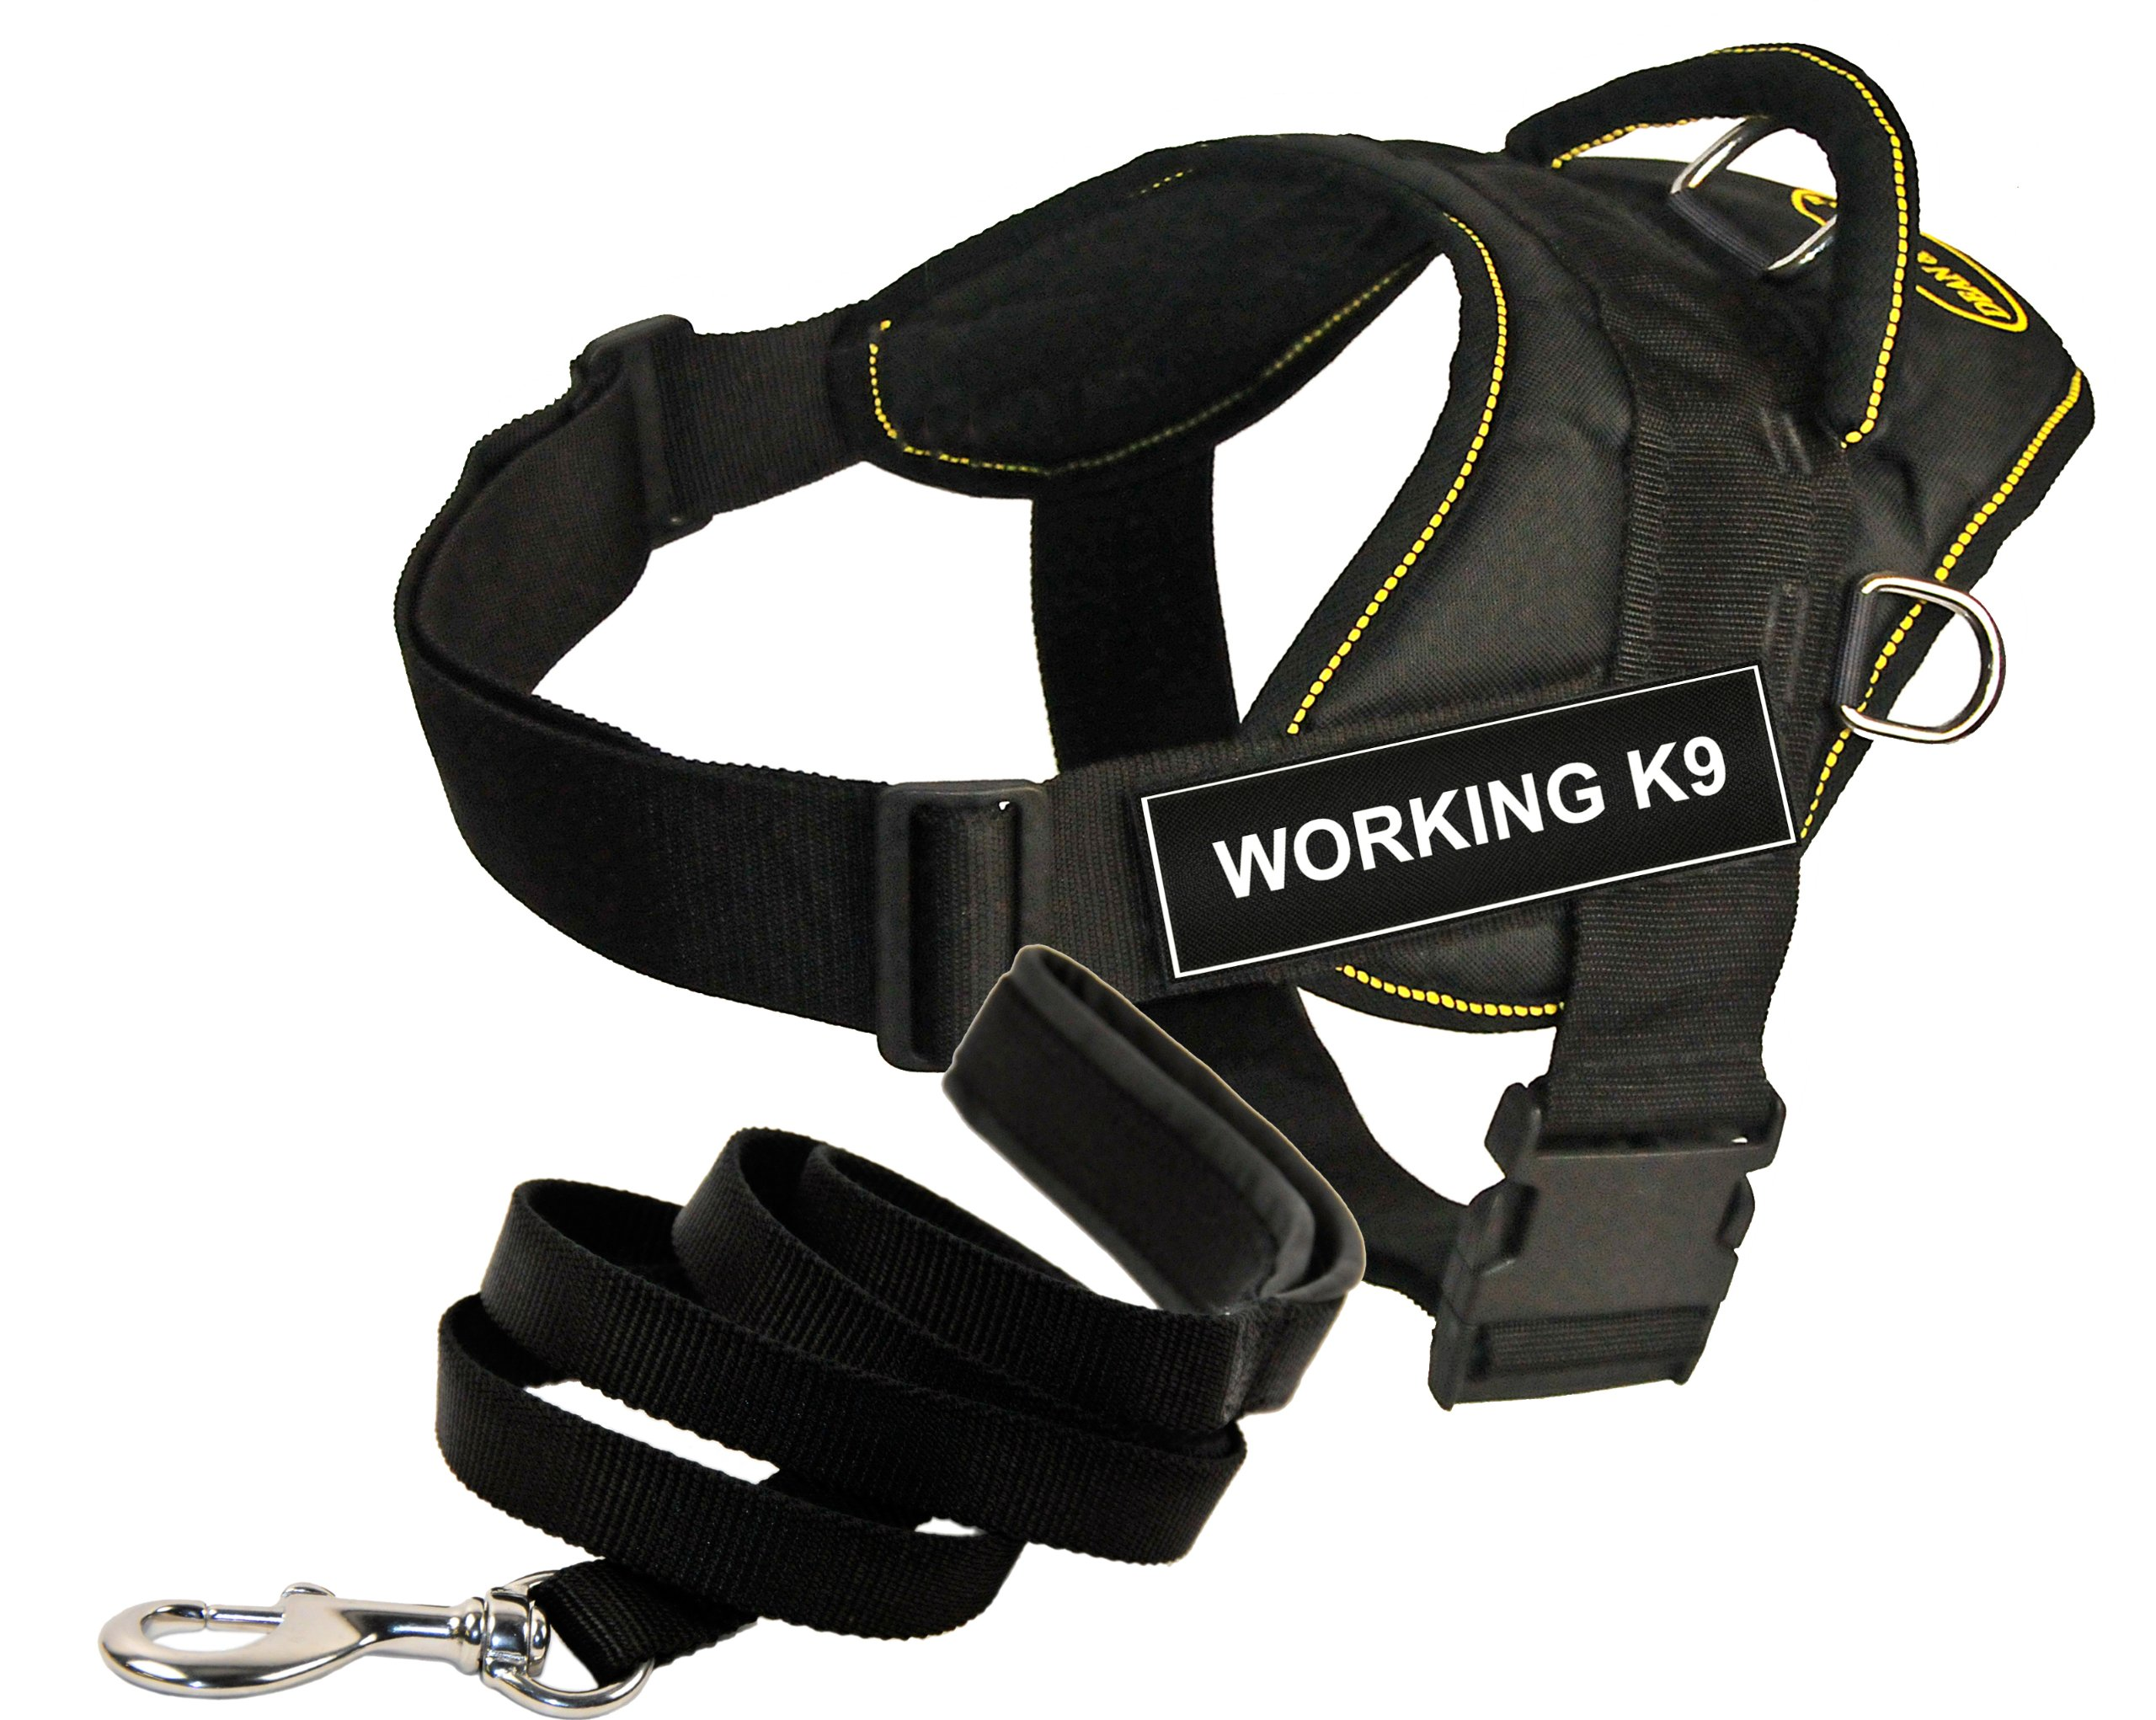 Dean and Tyler Bundle - One DT Fun Works Harness, Working K9, Yellow Trim, Medium (28'' - 34'') + One Padded Puppy Leash, 6 FT Stainless Snap - Black